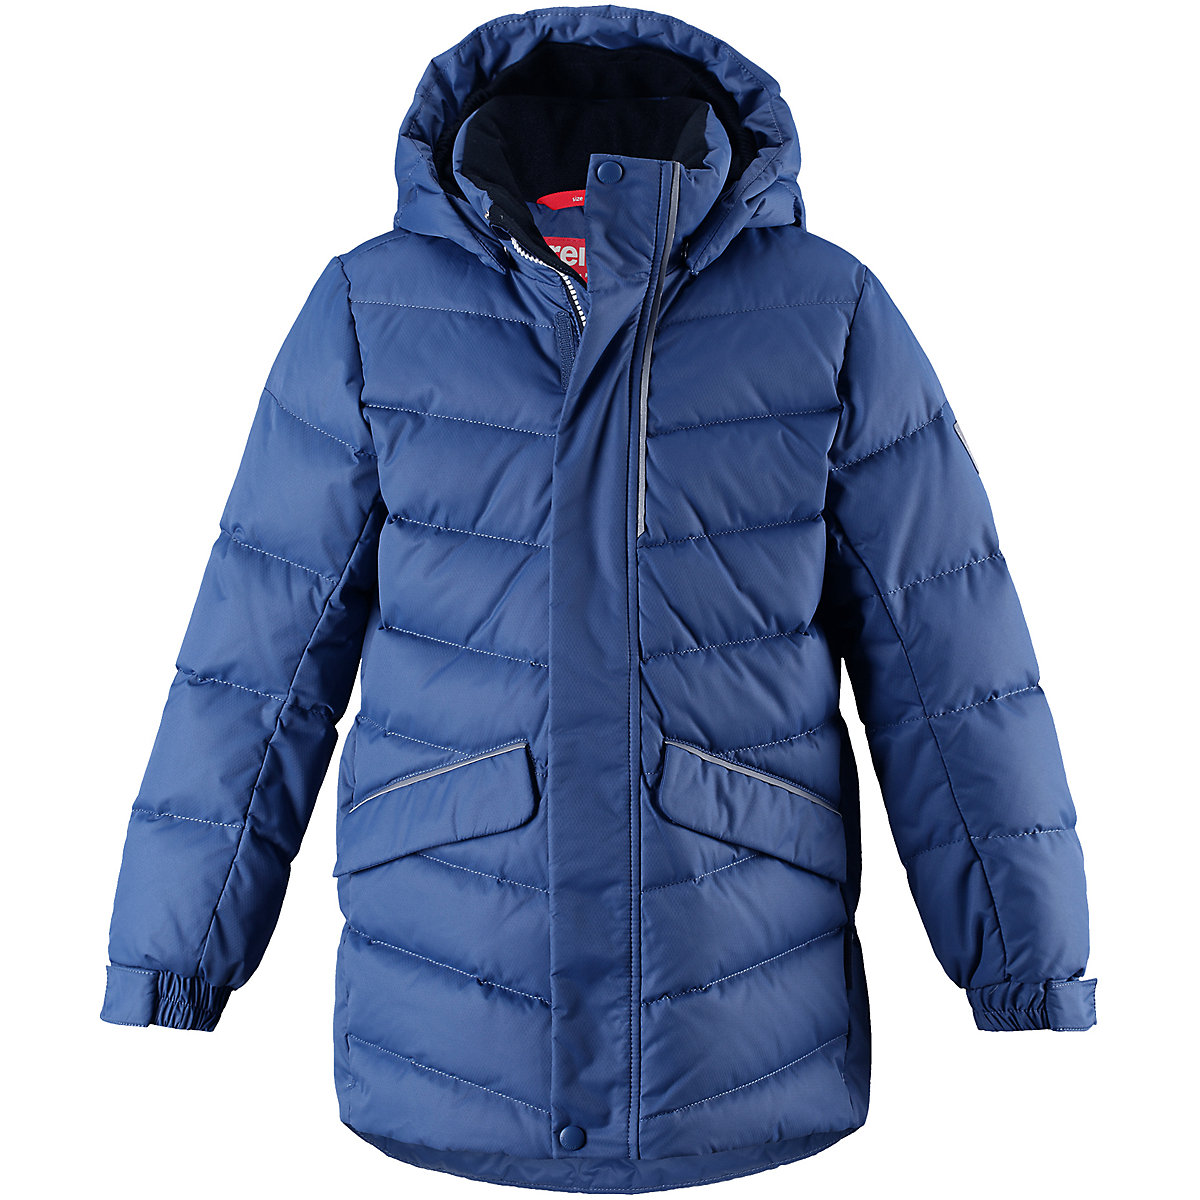 REIMA Jackets 8689392 for boys polyester winter  fur clothes boy brand orangemom winter boys baby clothes 0 24m infant costume for a boy coat jackets soft high quality outerwear